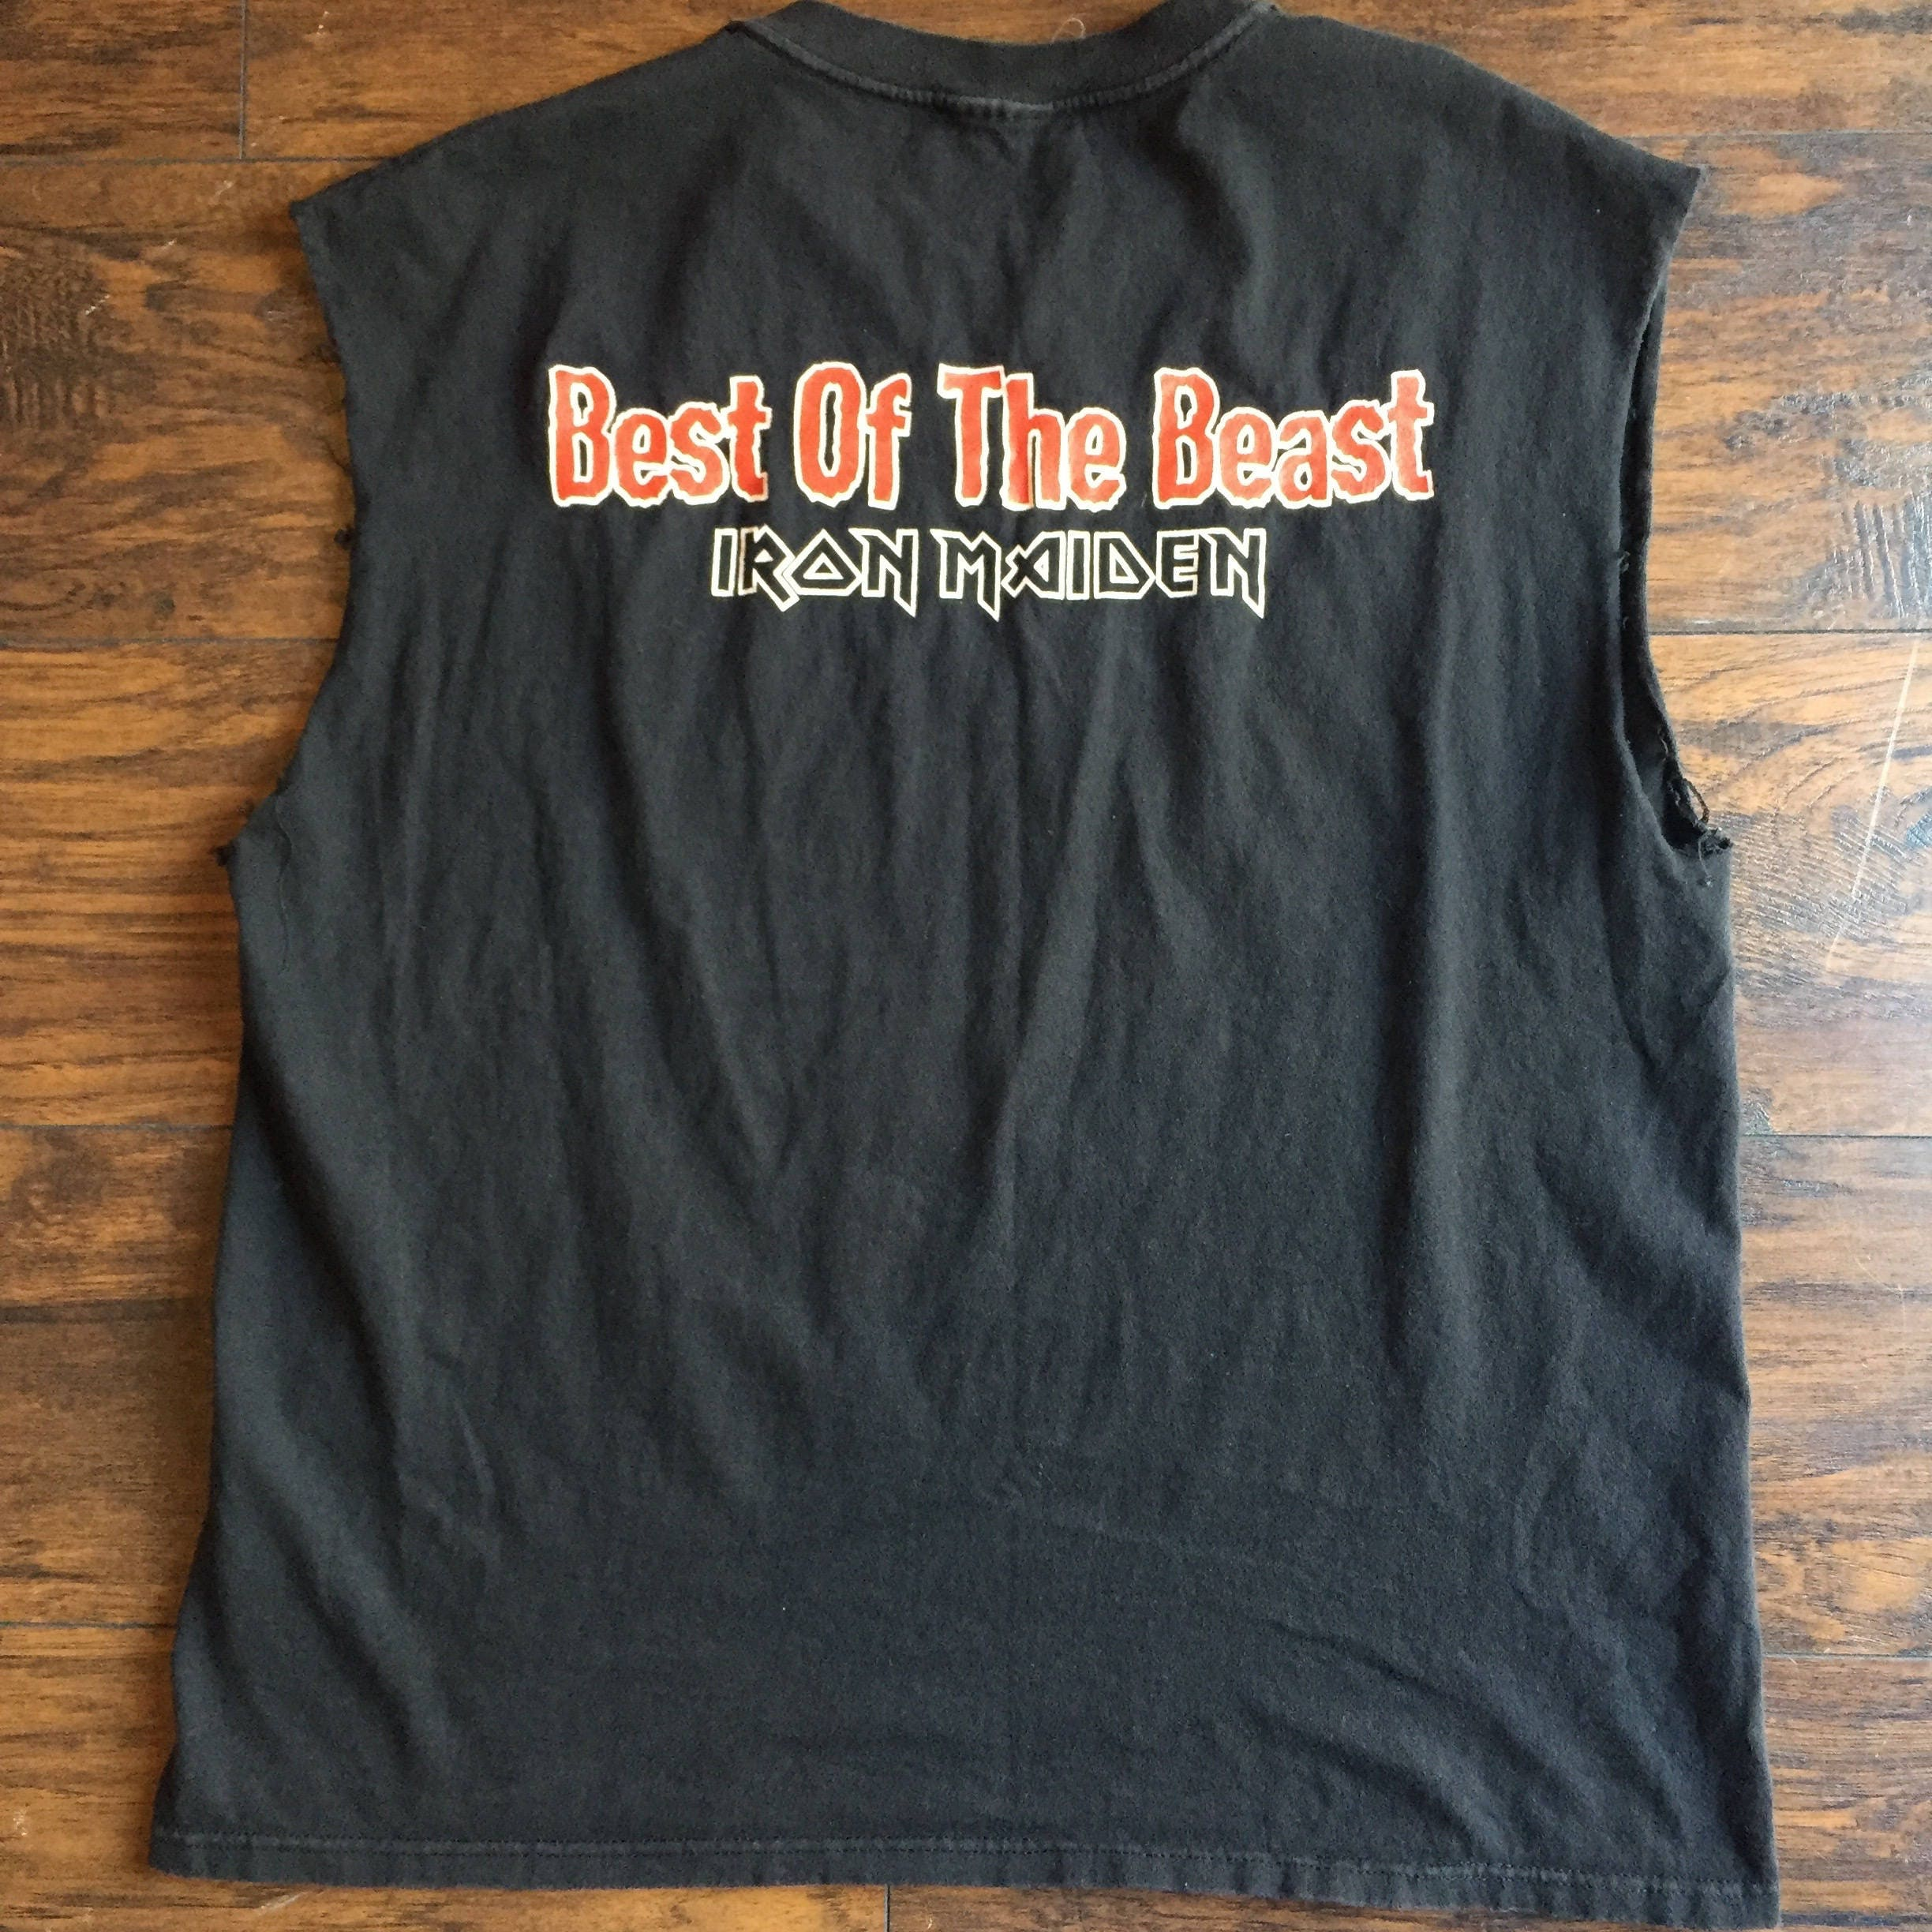 f2f1ed7c IRON MAIDEN vintage 90's Best of the Beast 1997 muscle tank top ...